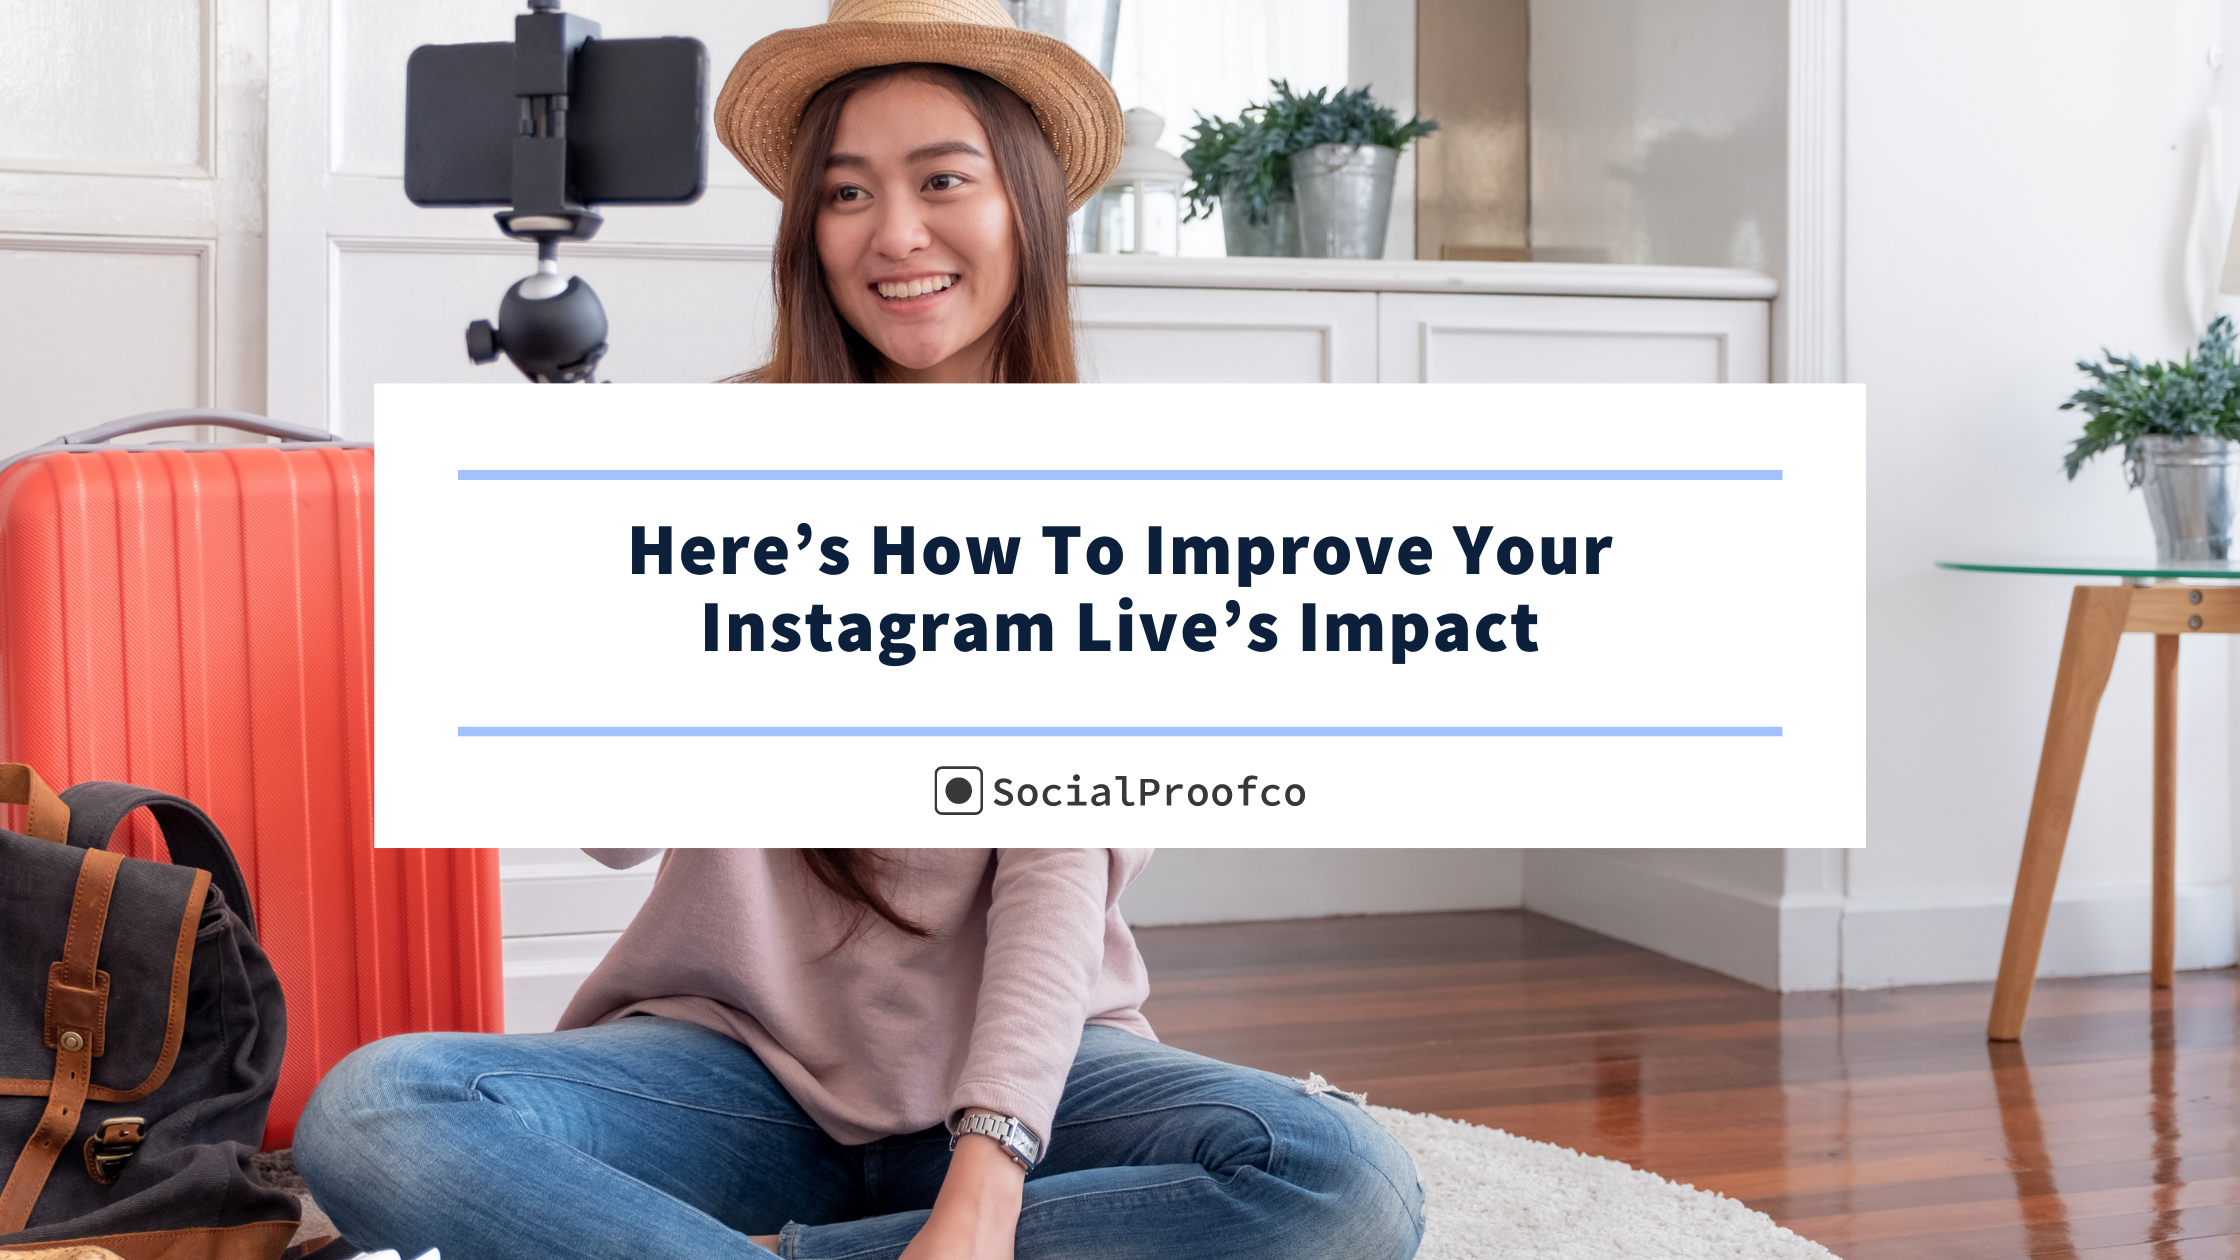 How To Improve Your Instagram Live's Impact